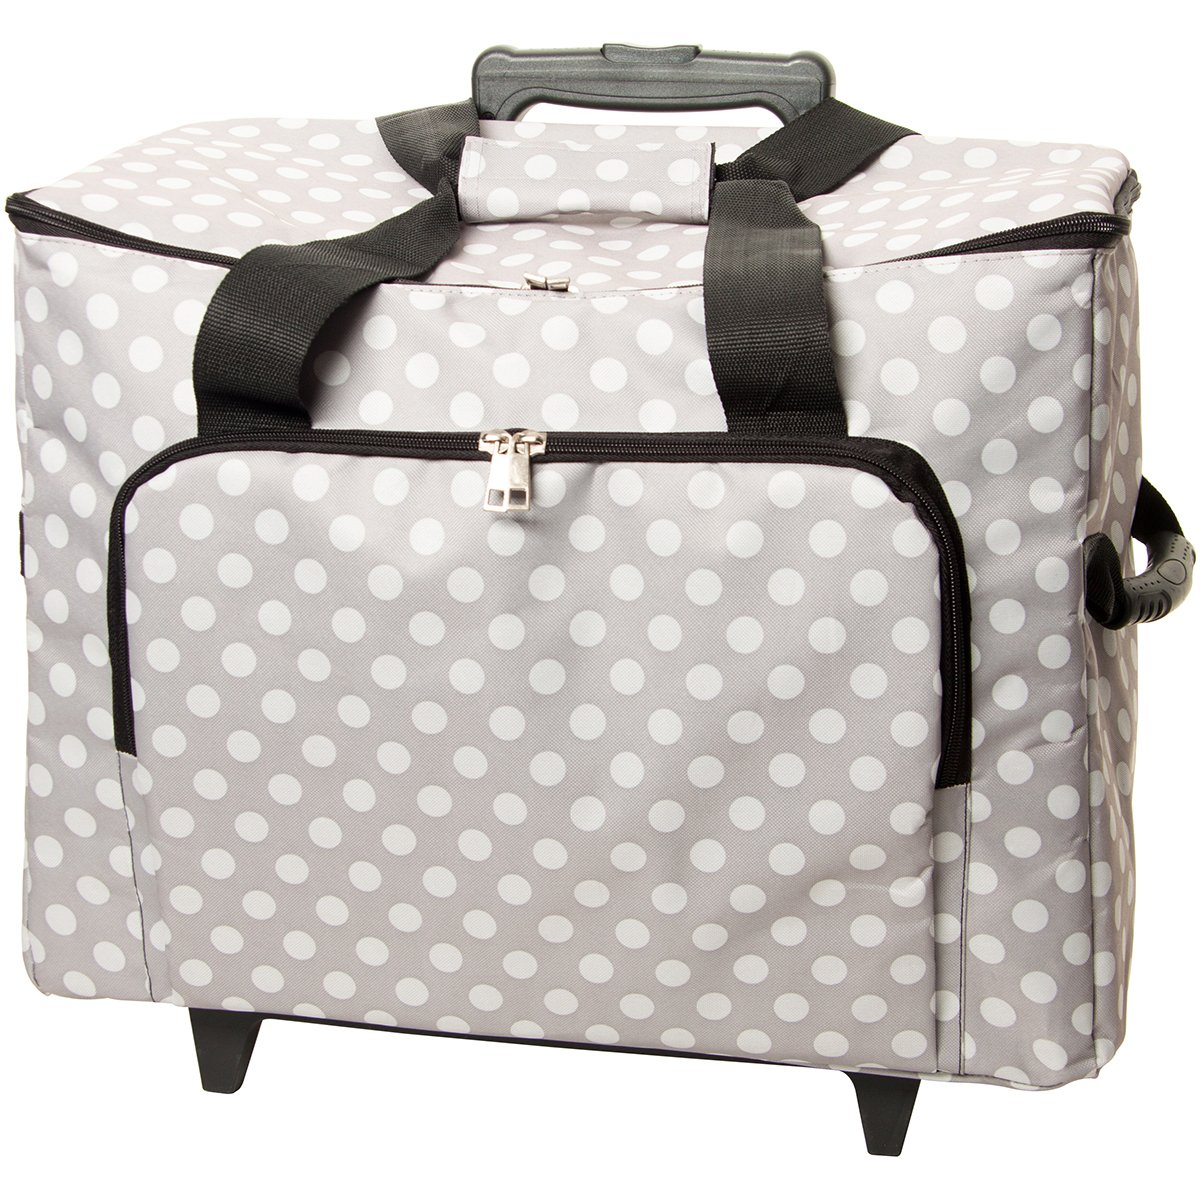 Tacony Corporation Sewing Machine Trolley, 17' by 13' by 19', Gray with White Polka Dots 17 by 13 by 19 MRTB008